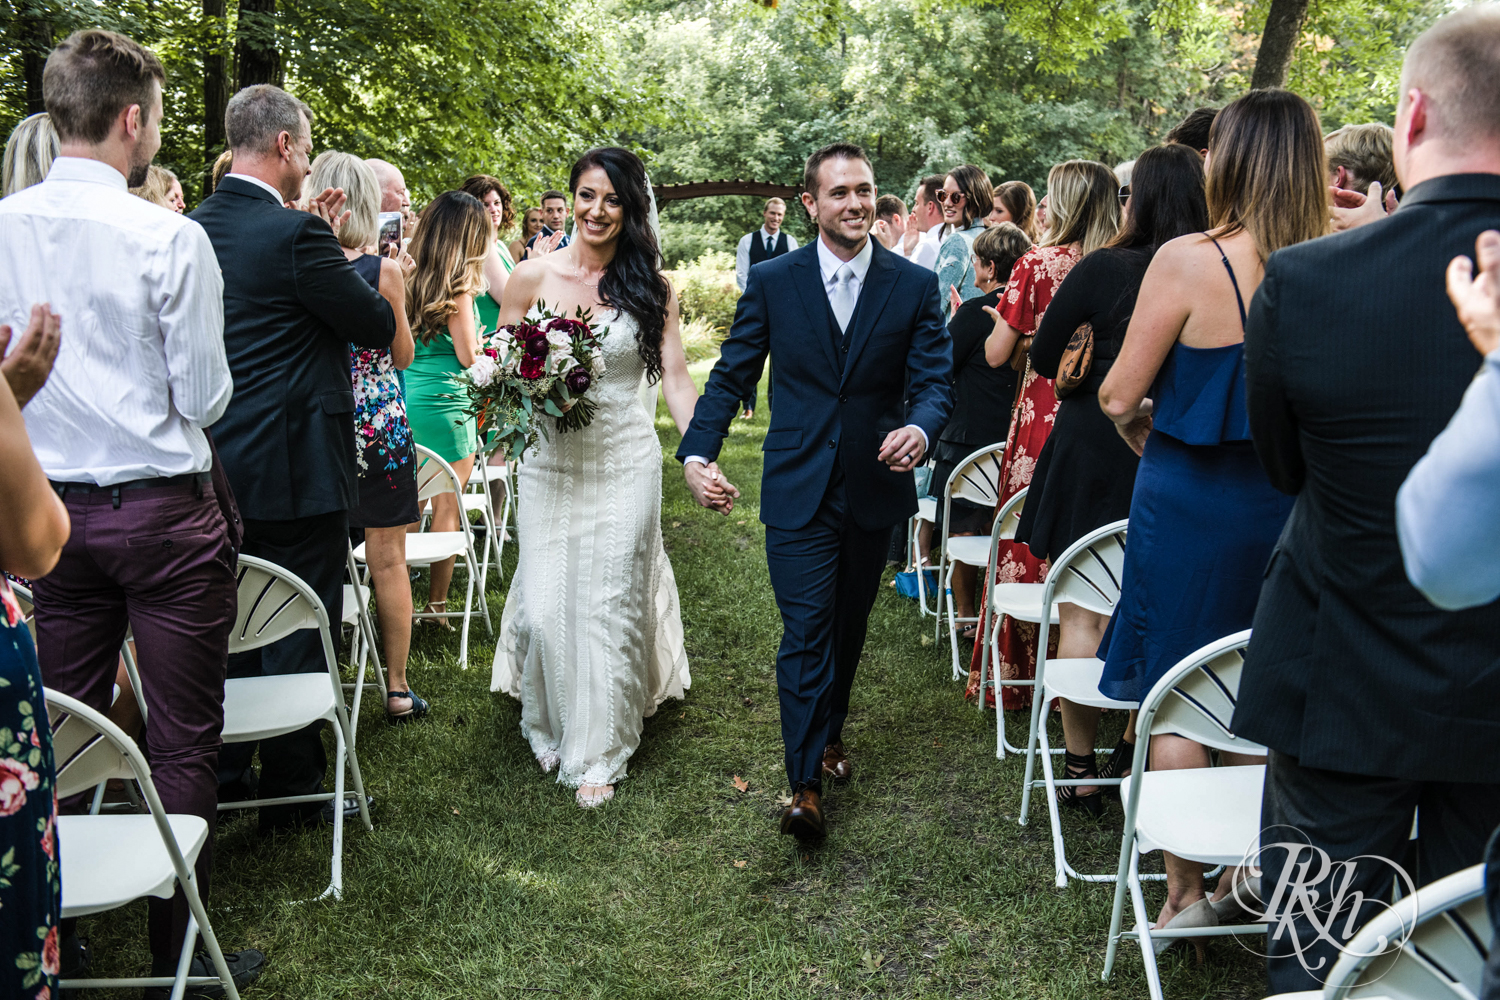 Minnesota Wedding Photography - RKH Images - Best of 2018 (28 of 51).jpg